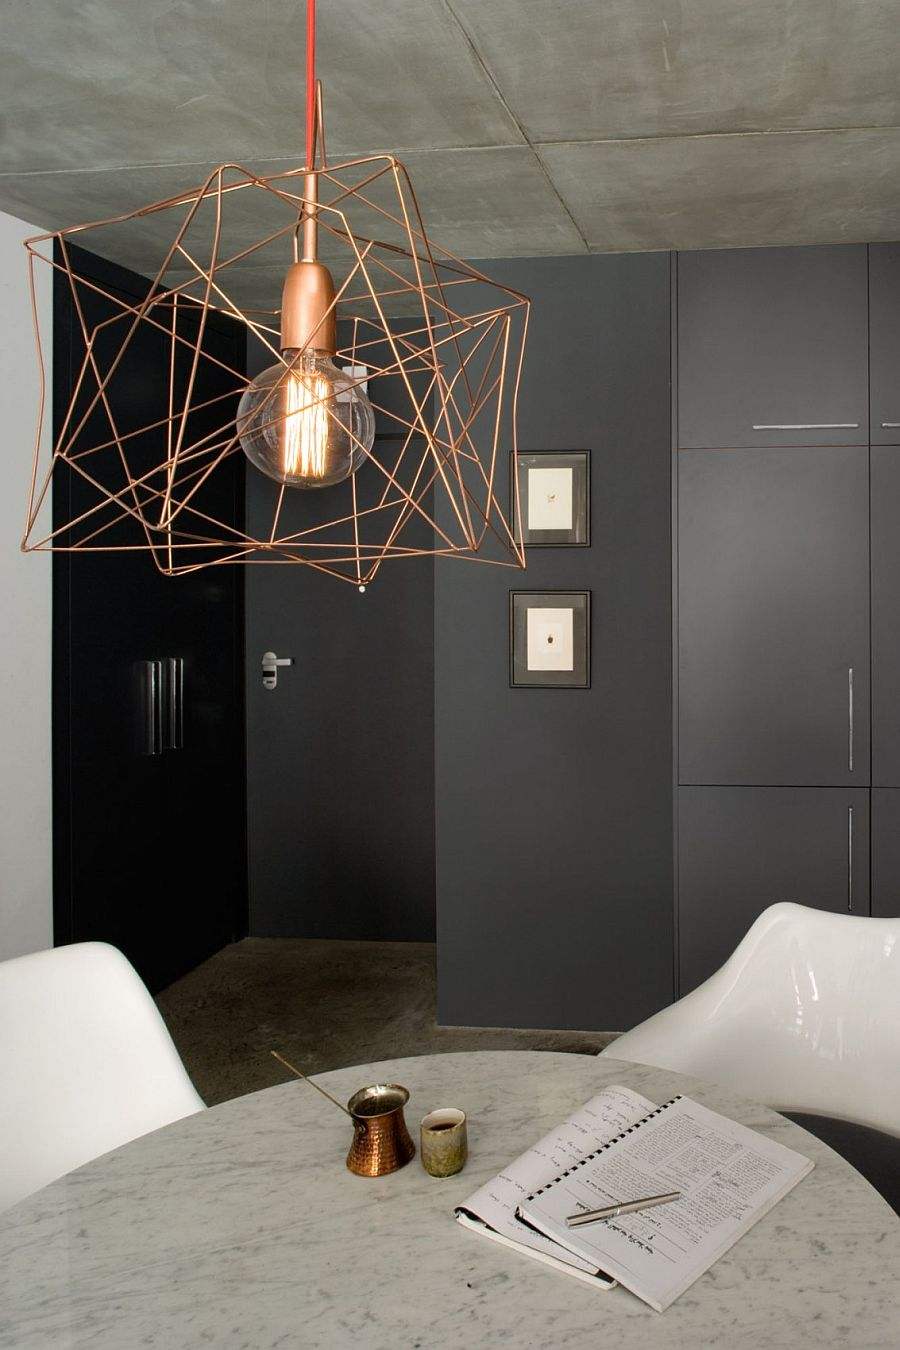 quirky lighting. View In Gallery Gray Backdrop And Snazzy Lighting Add To The Appeal Of Quirky, Small Apartment Quirky S